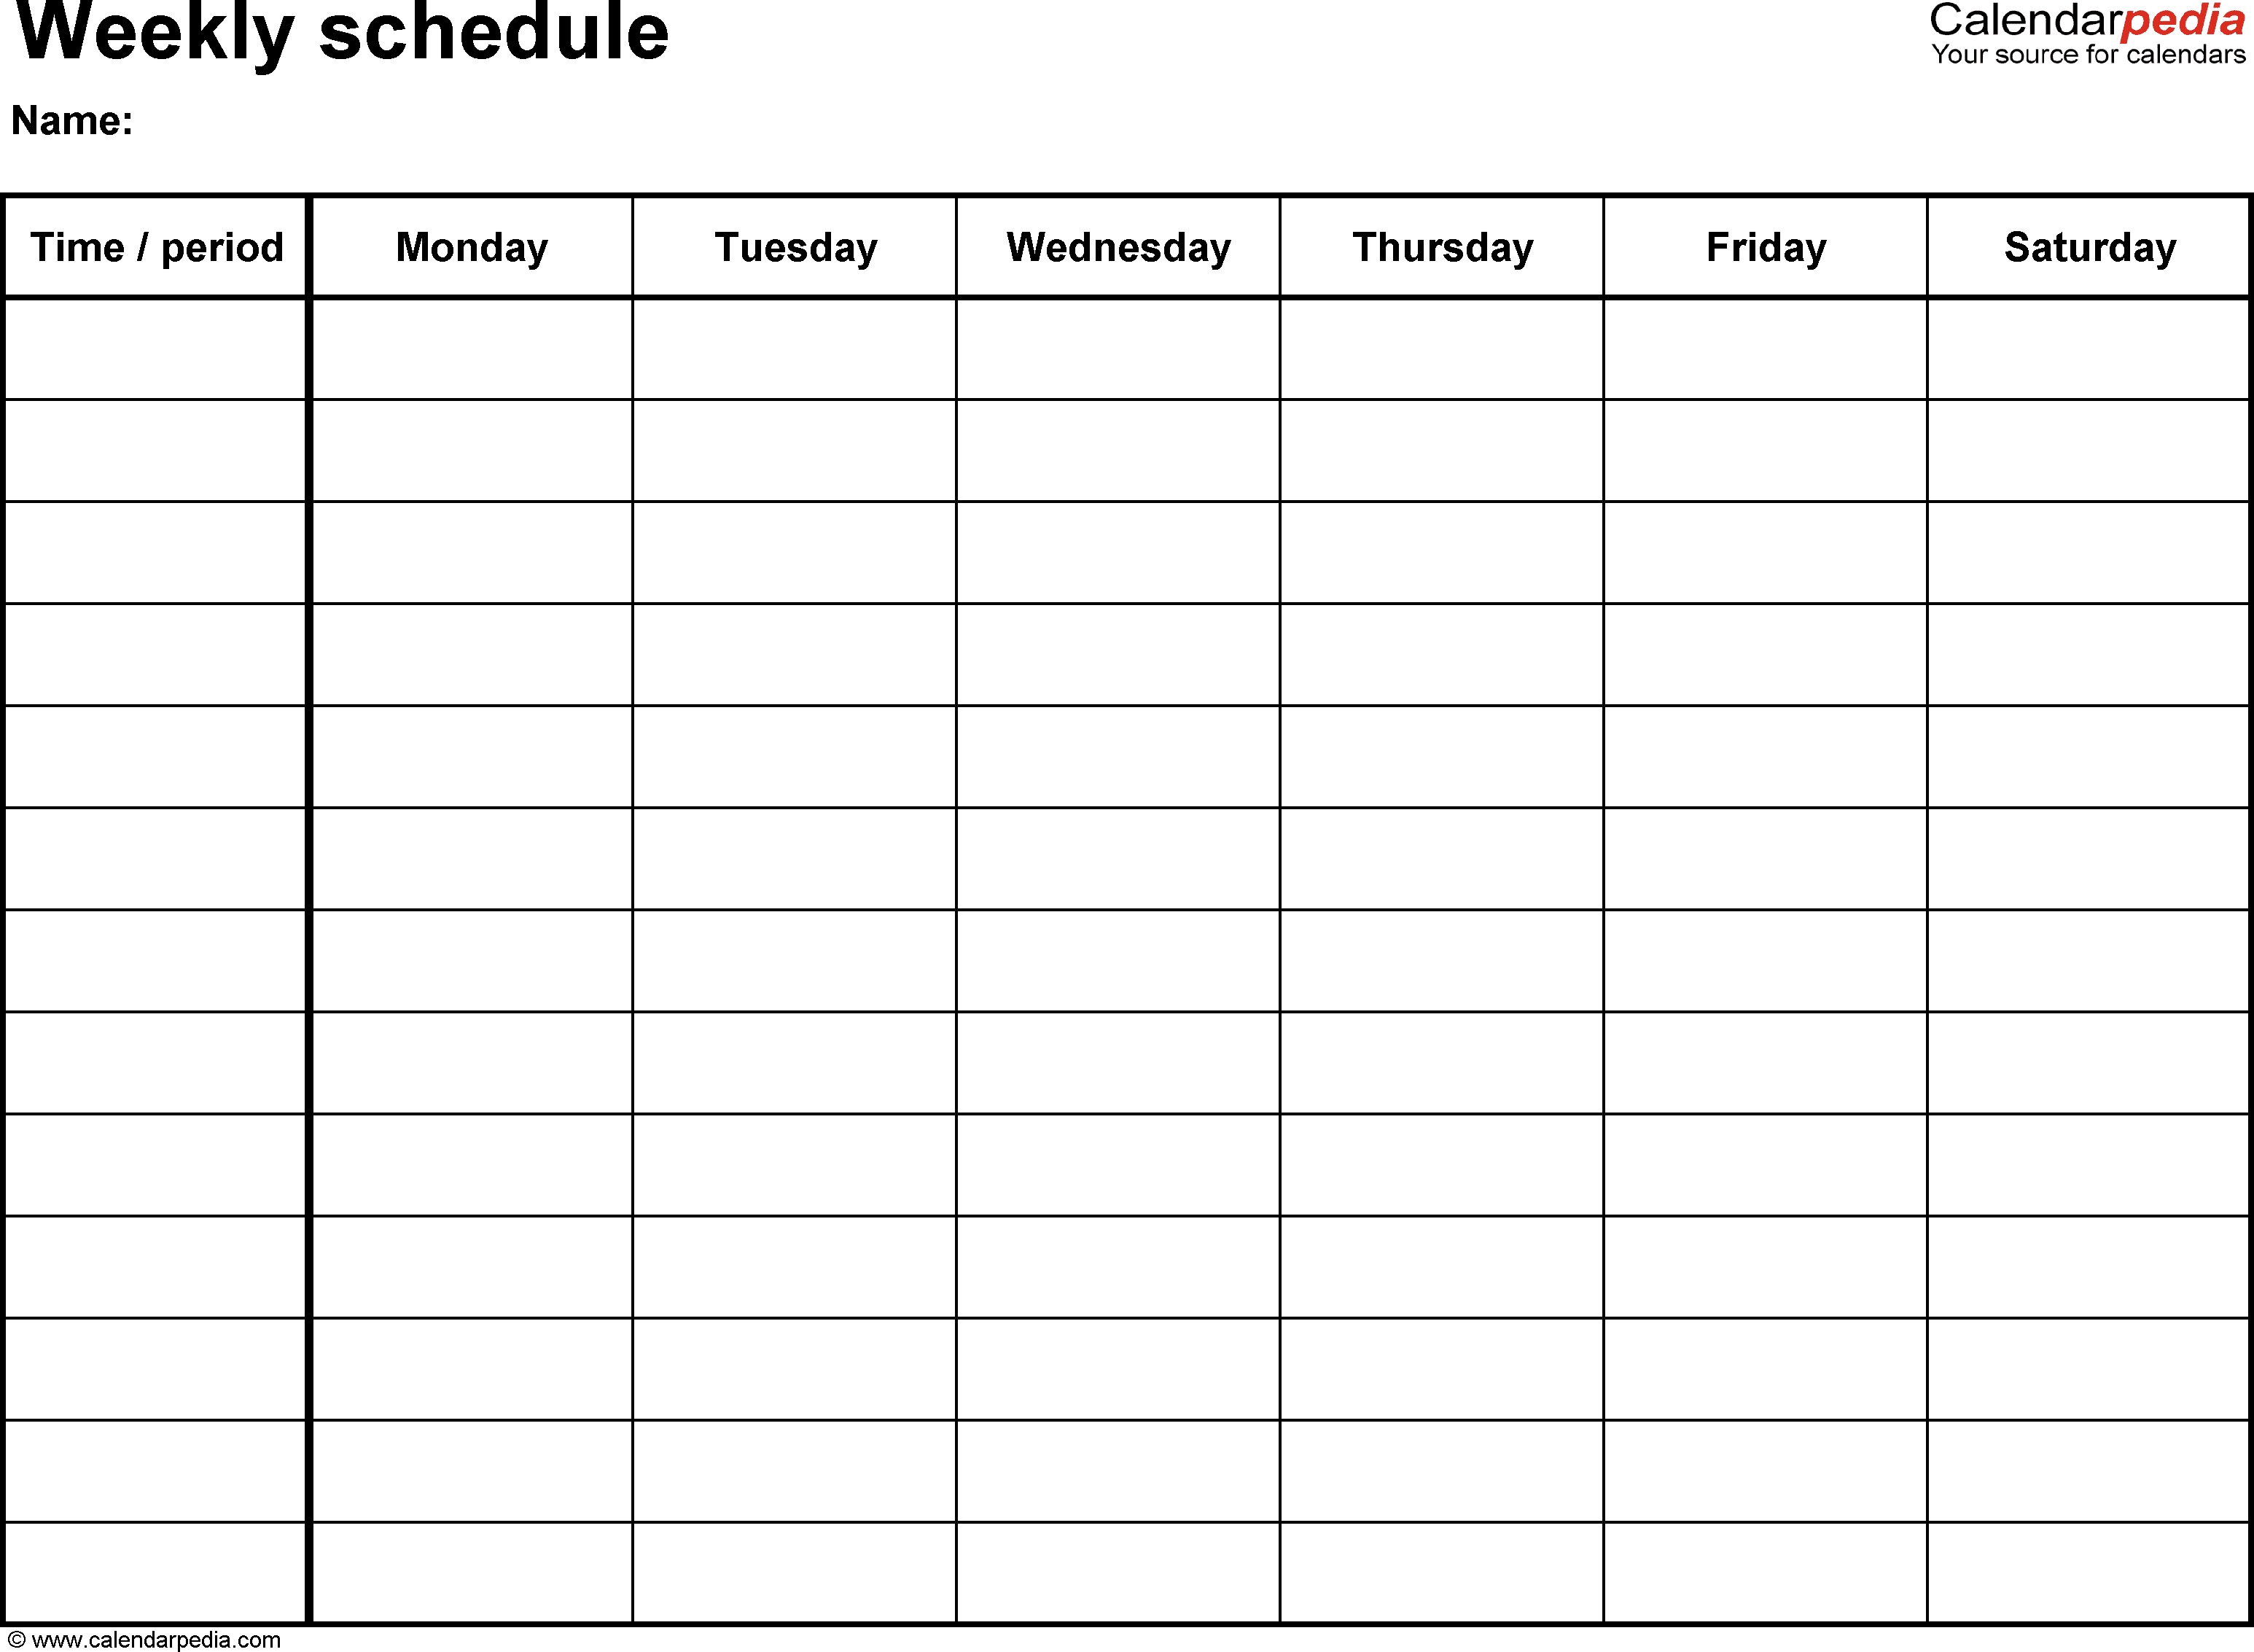 Free Weekly Schedule Templates For Pdf - 18 Templates pertaining to Pdf Free Monday - Friday Weekly Planner